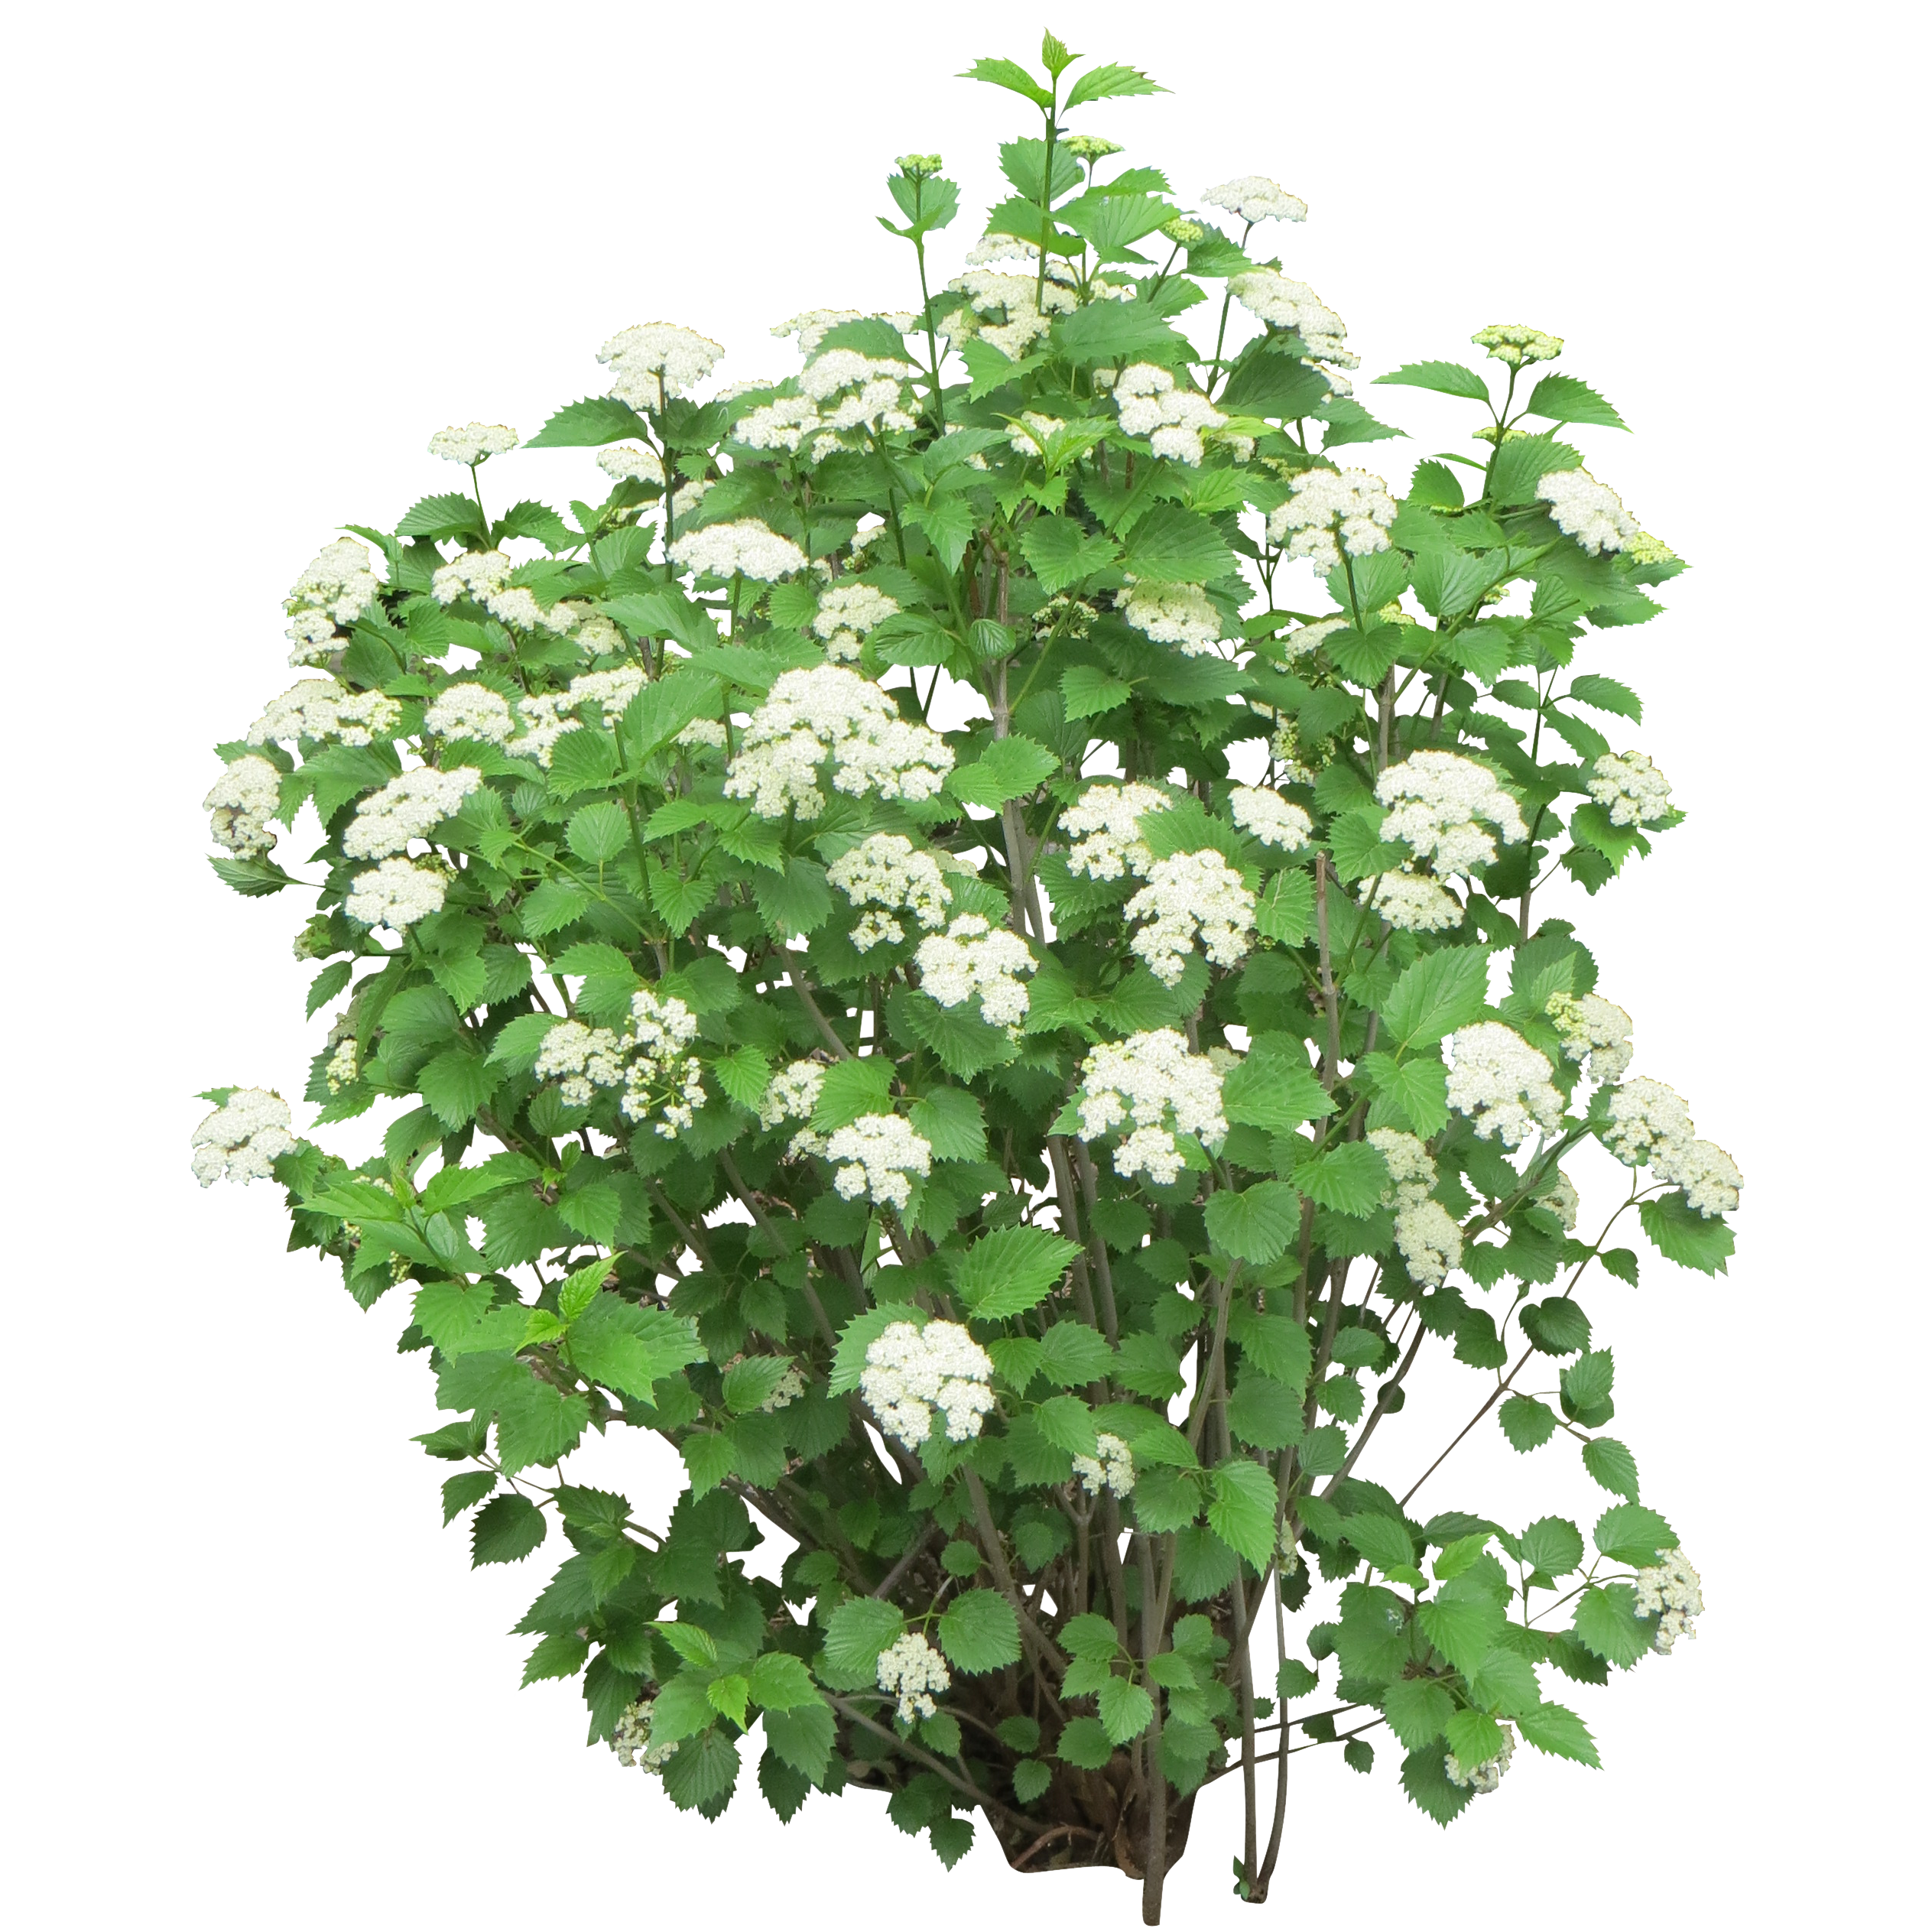 Bush With White Flowers Png 2527 2527 Bush With White Flowers Plants Shrubs